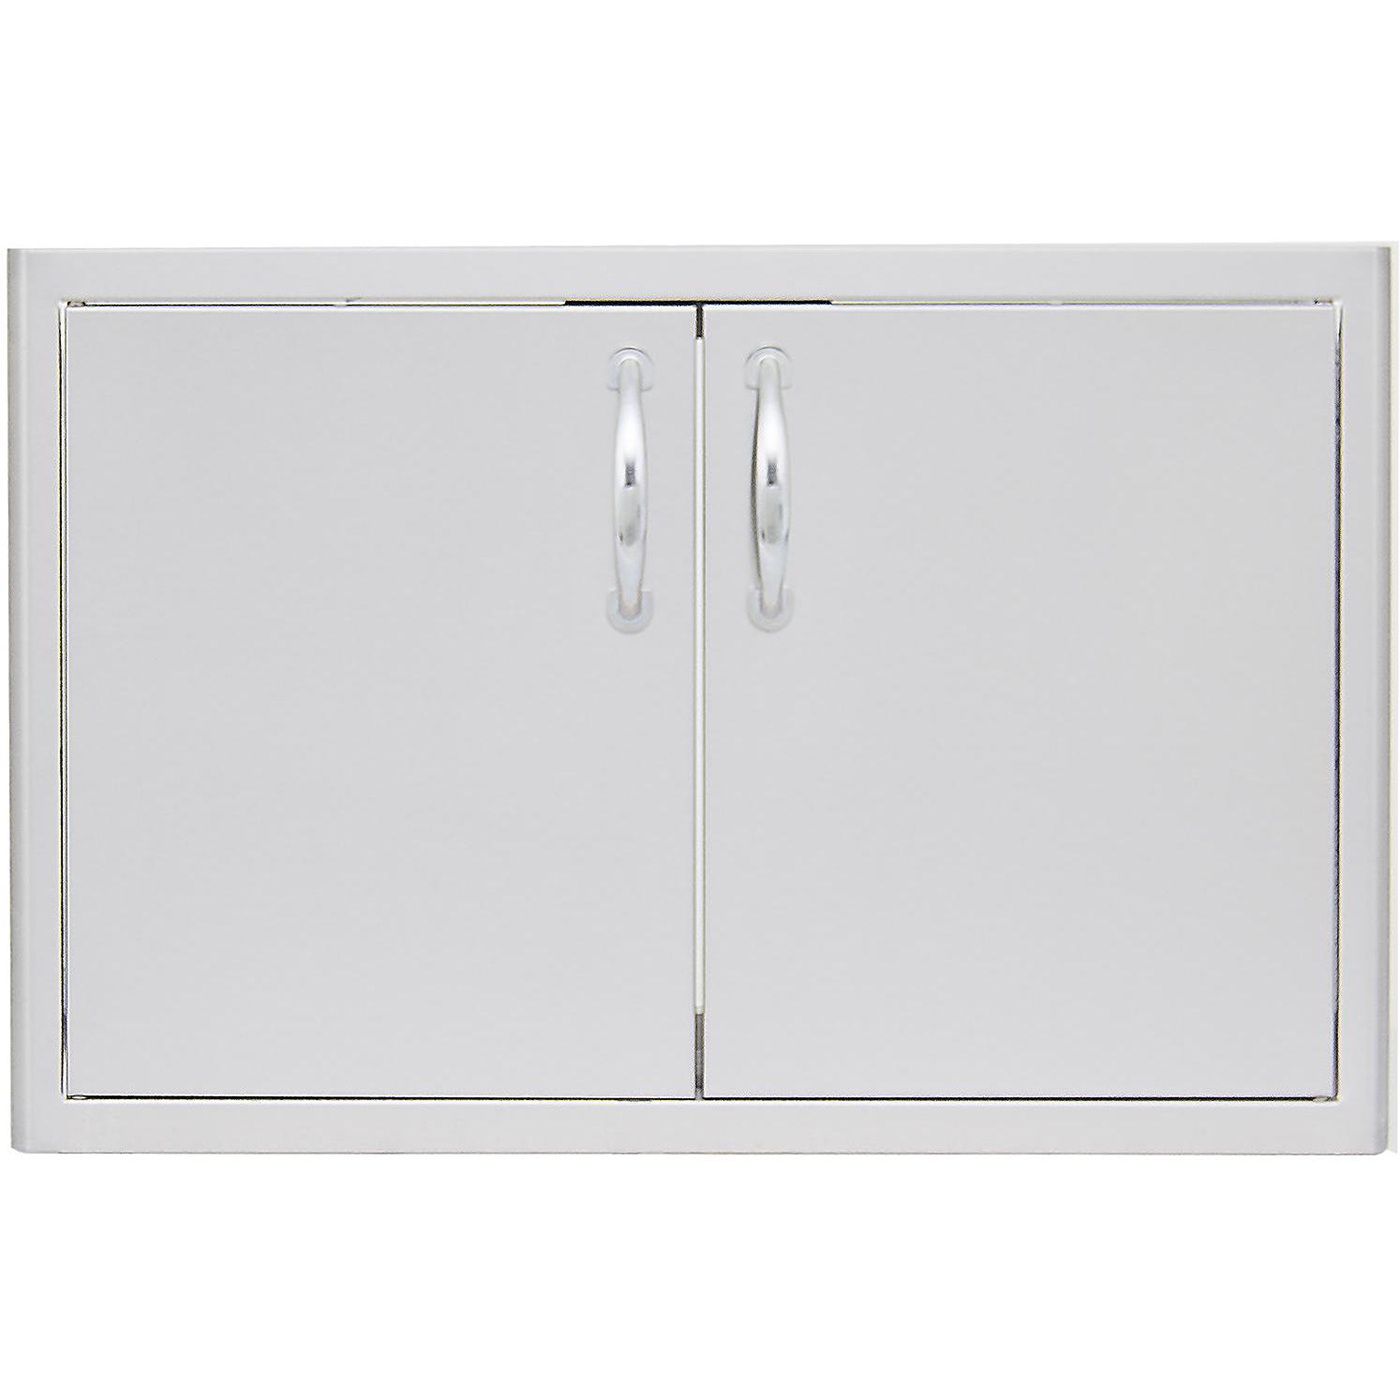 "Blaze 25"" Double Access Door"